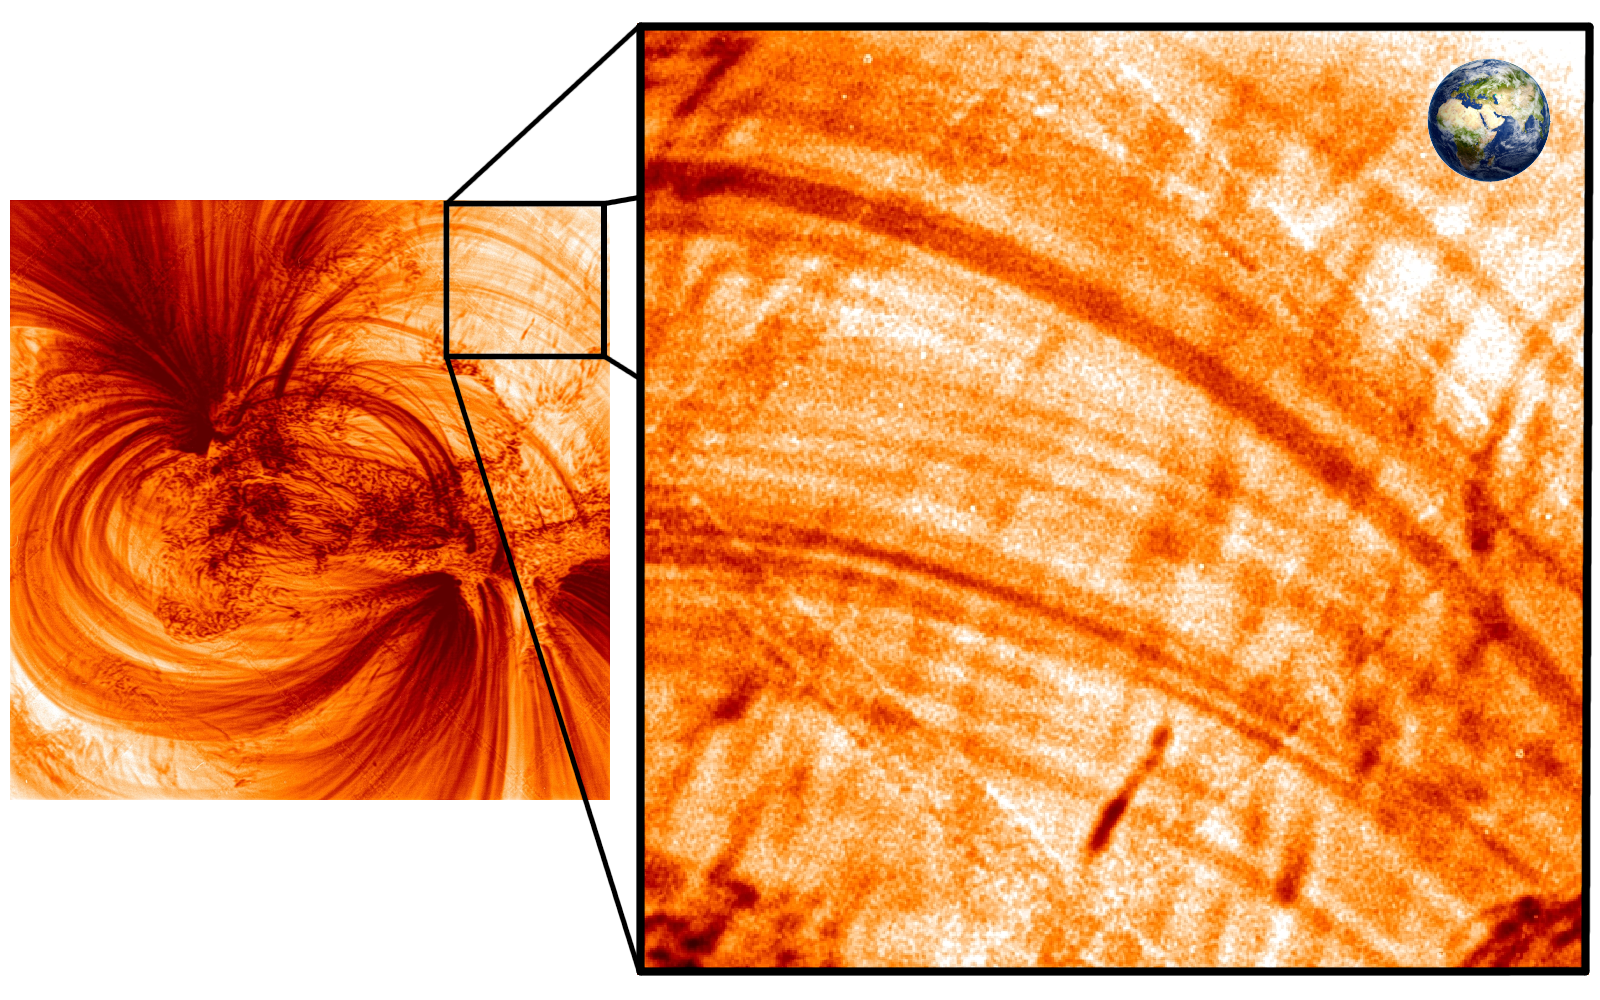 Highest ever resolution images of the sun